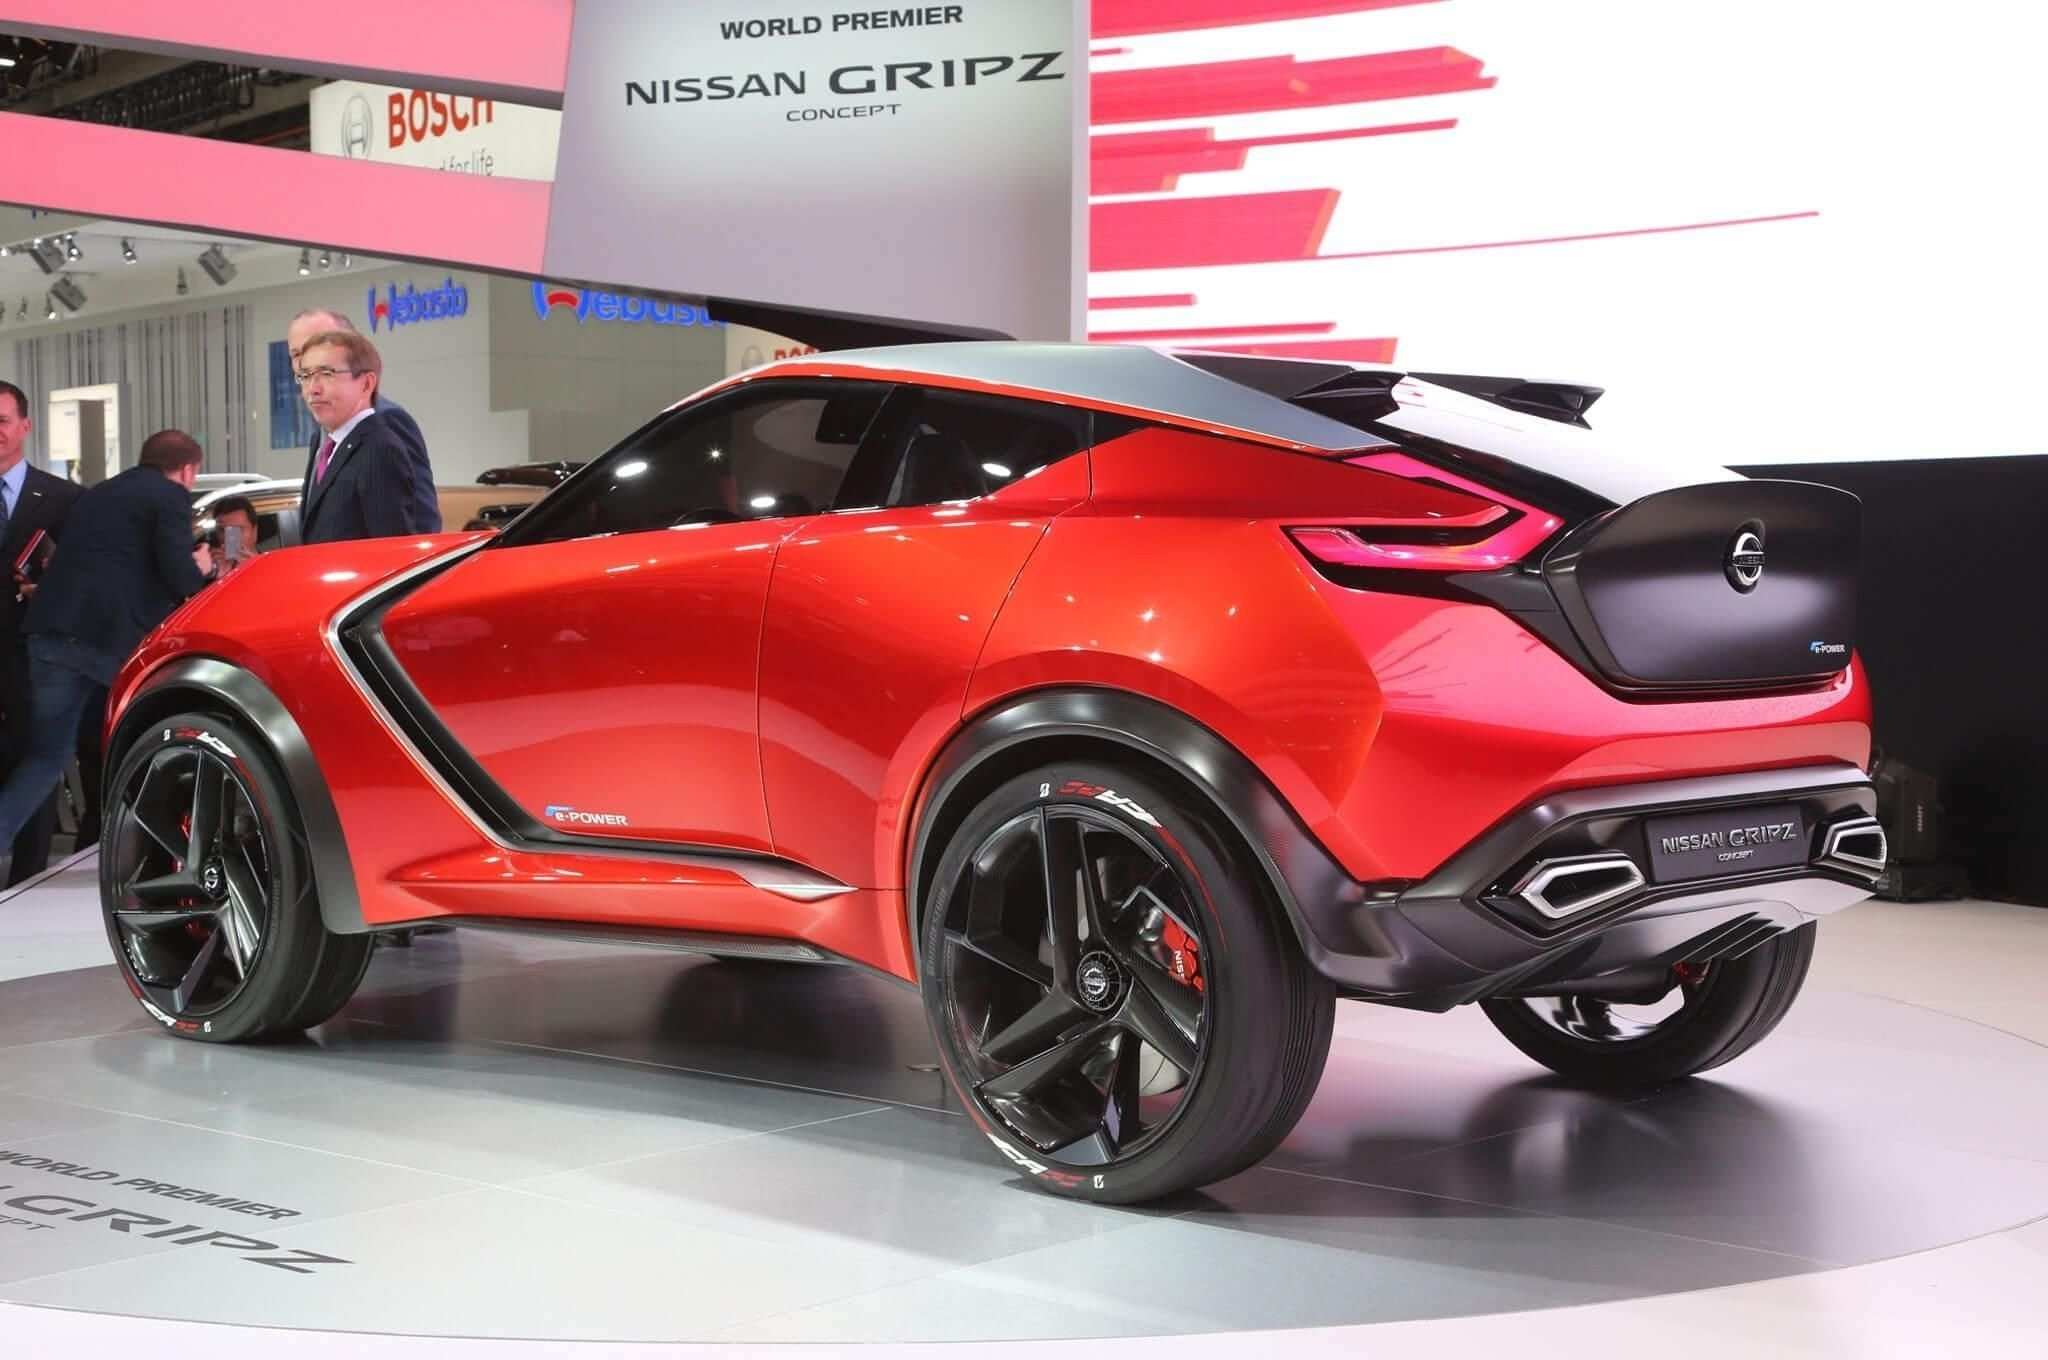 62 The New 2019 Nissan Juke Review Concept Performance by New 2019 Nissan Juke Review Concept